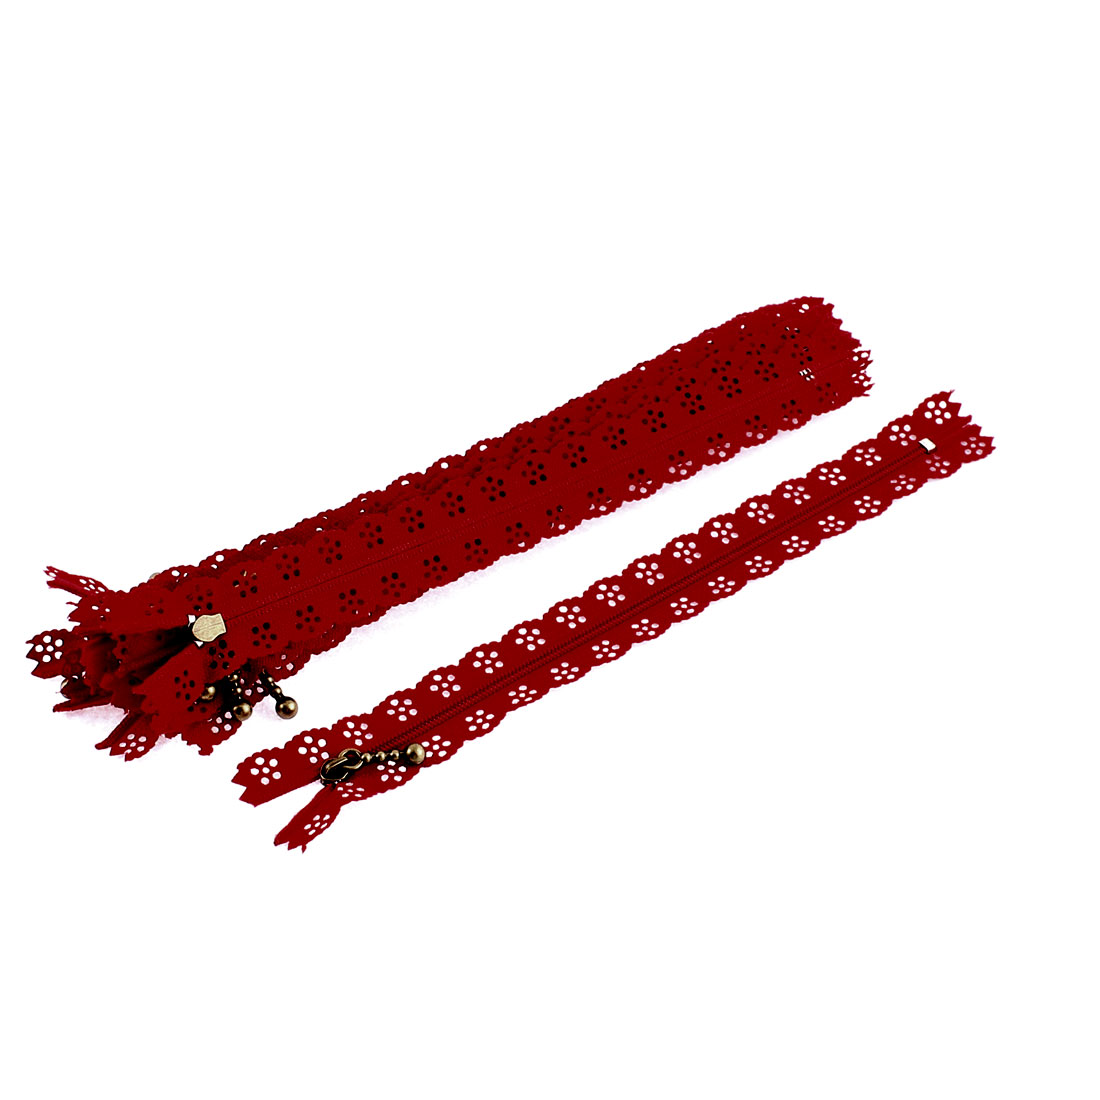 10 Pcs Red Nylon Lace Edged Closed End Sewing Zipper Zip